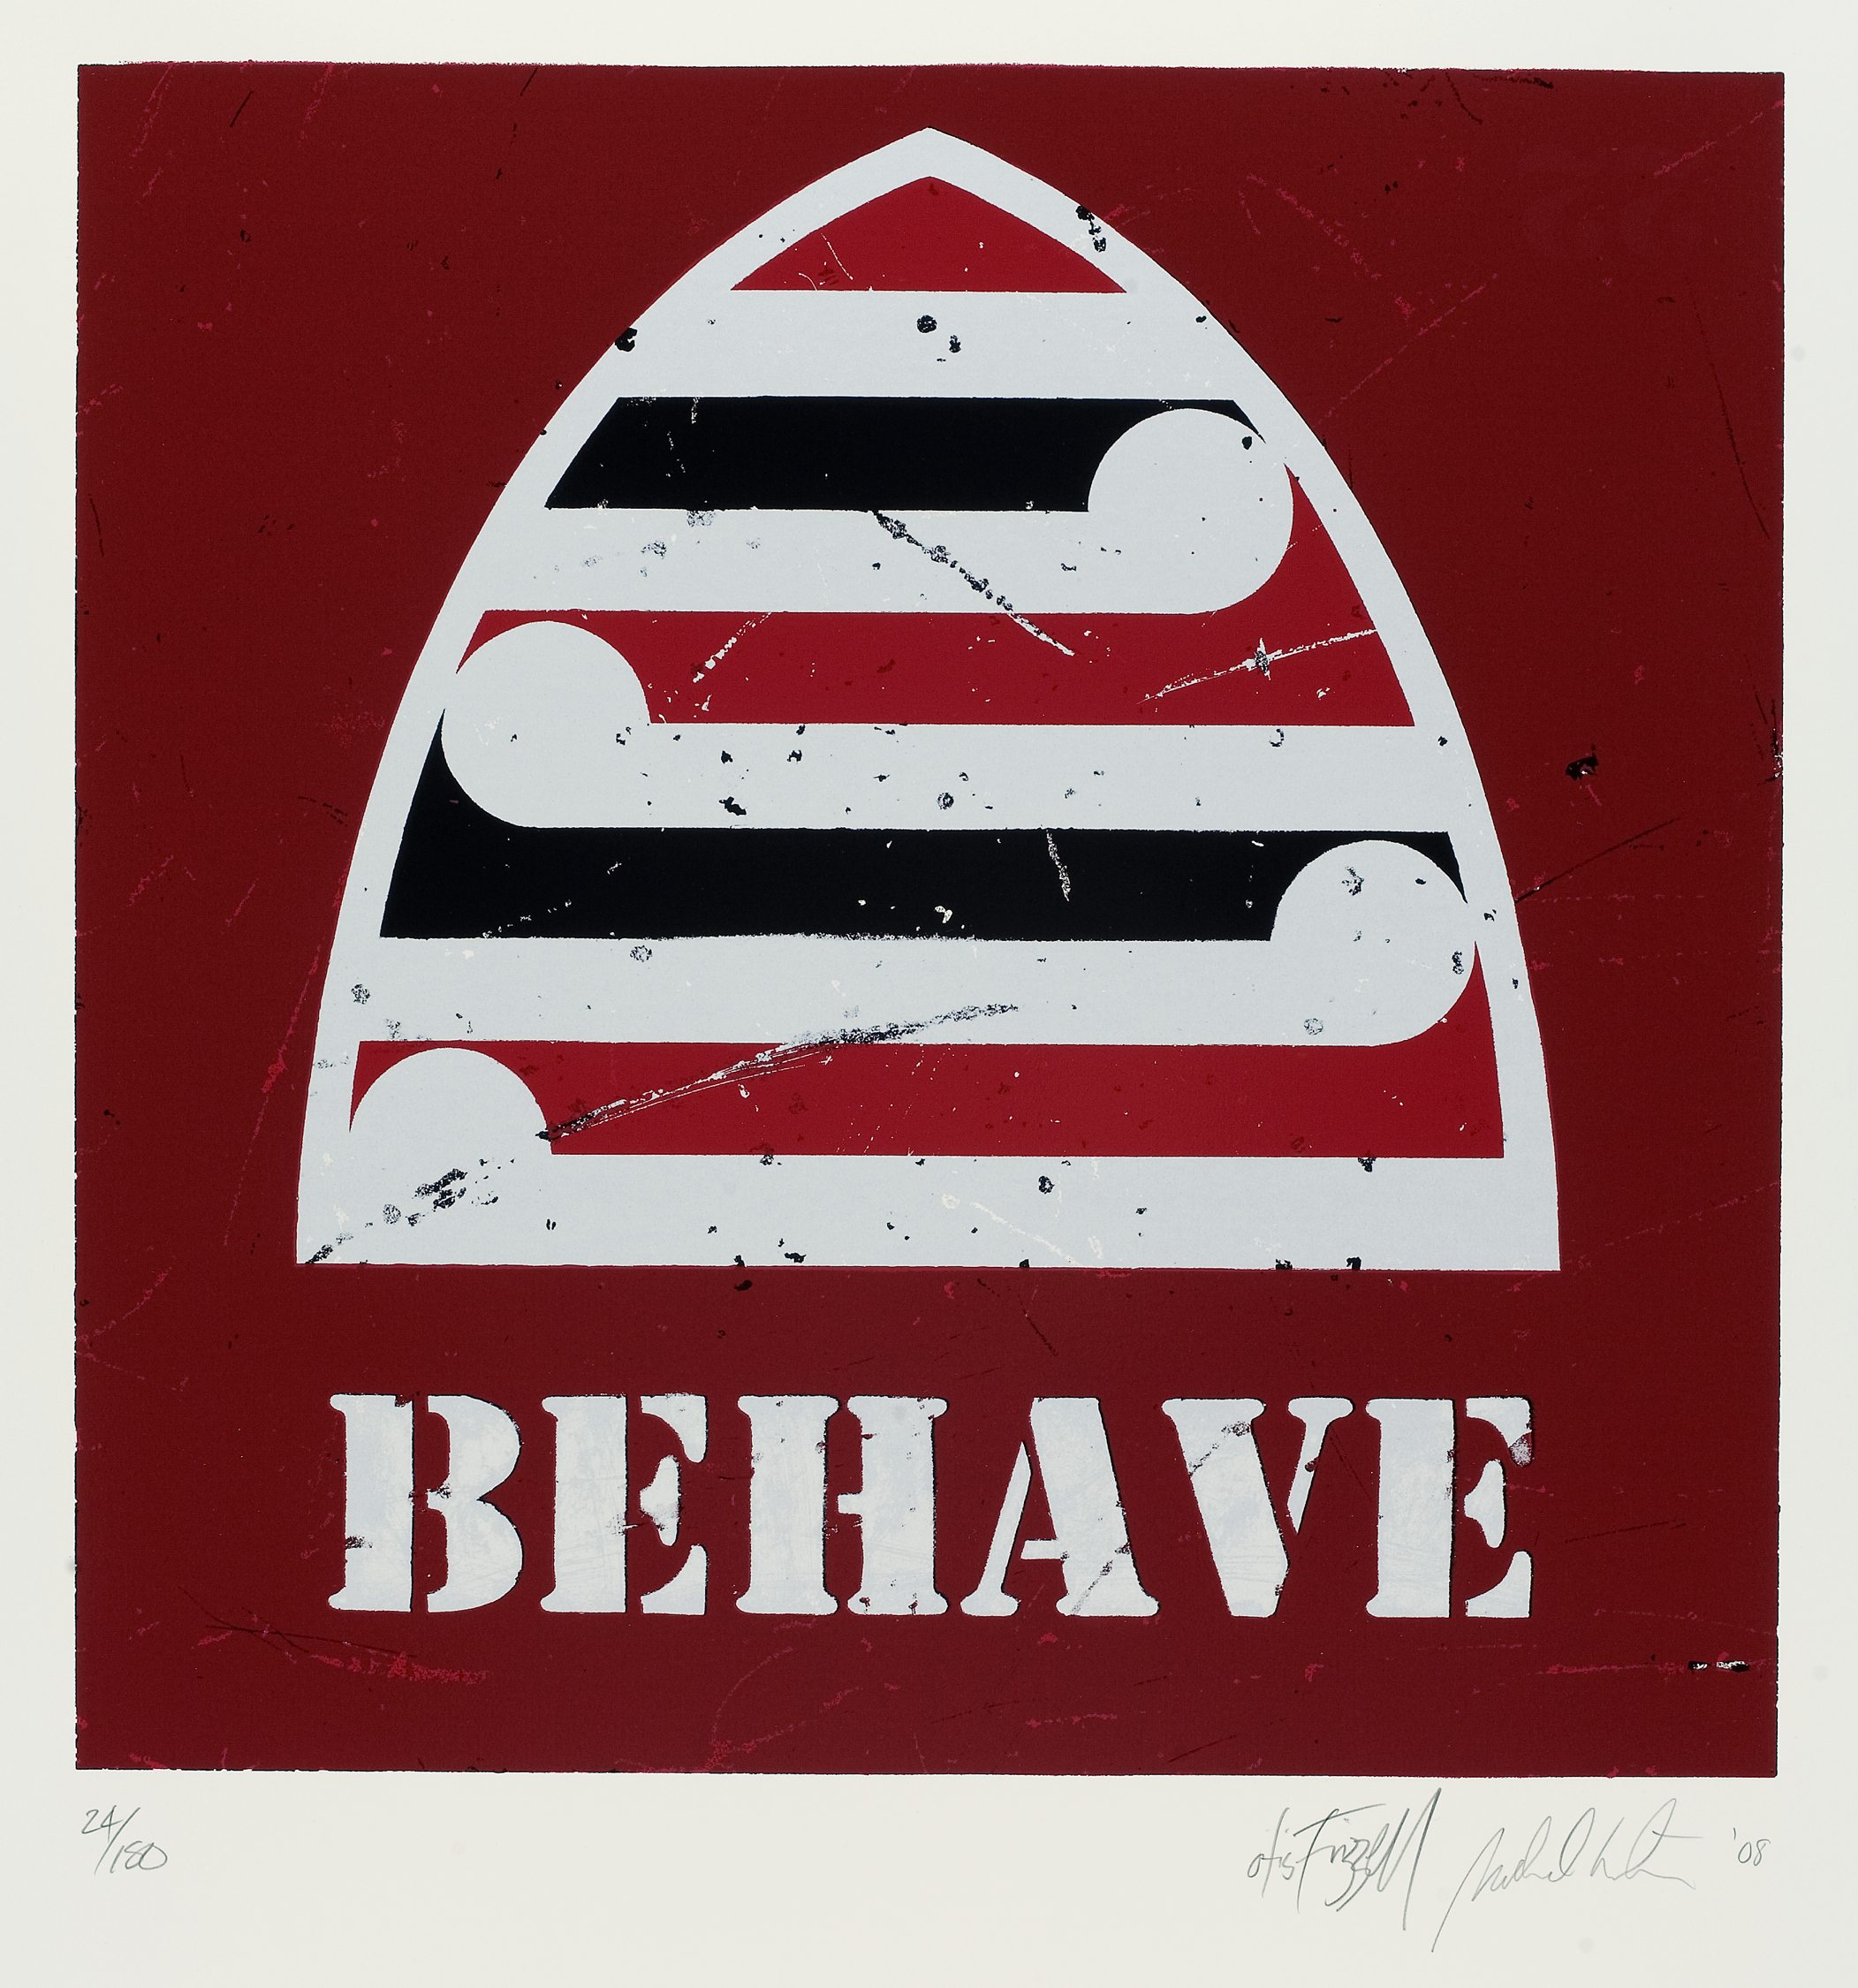 BEHAVE RED 24 OF 180.jpg